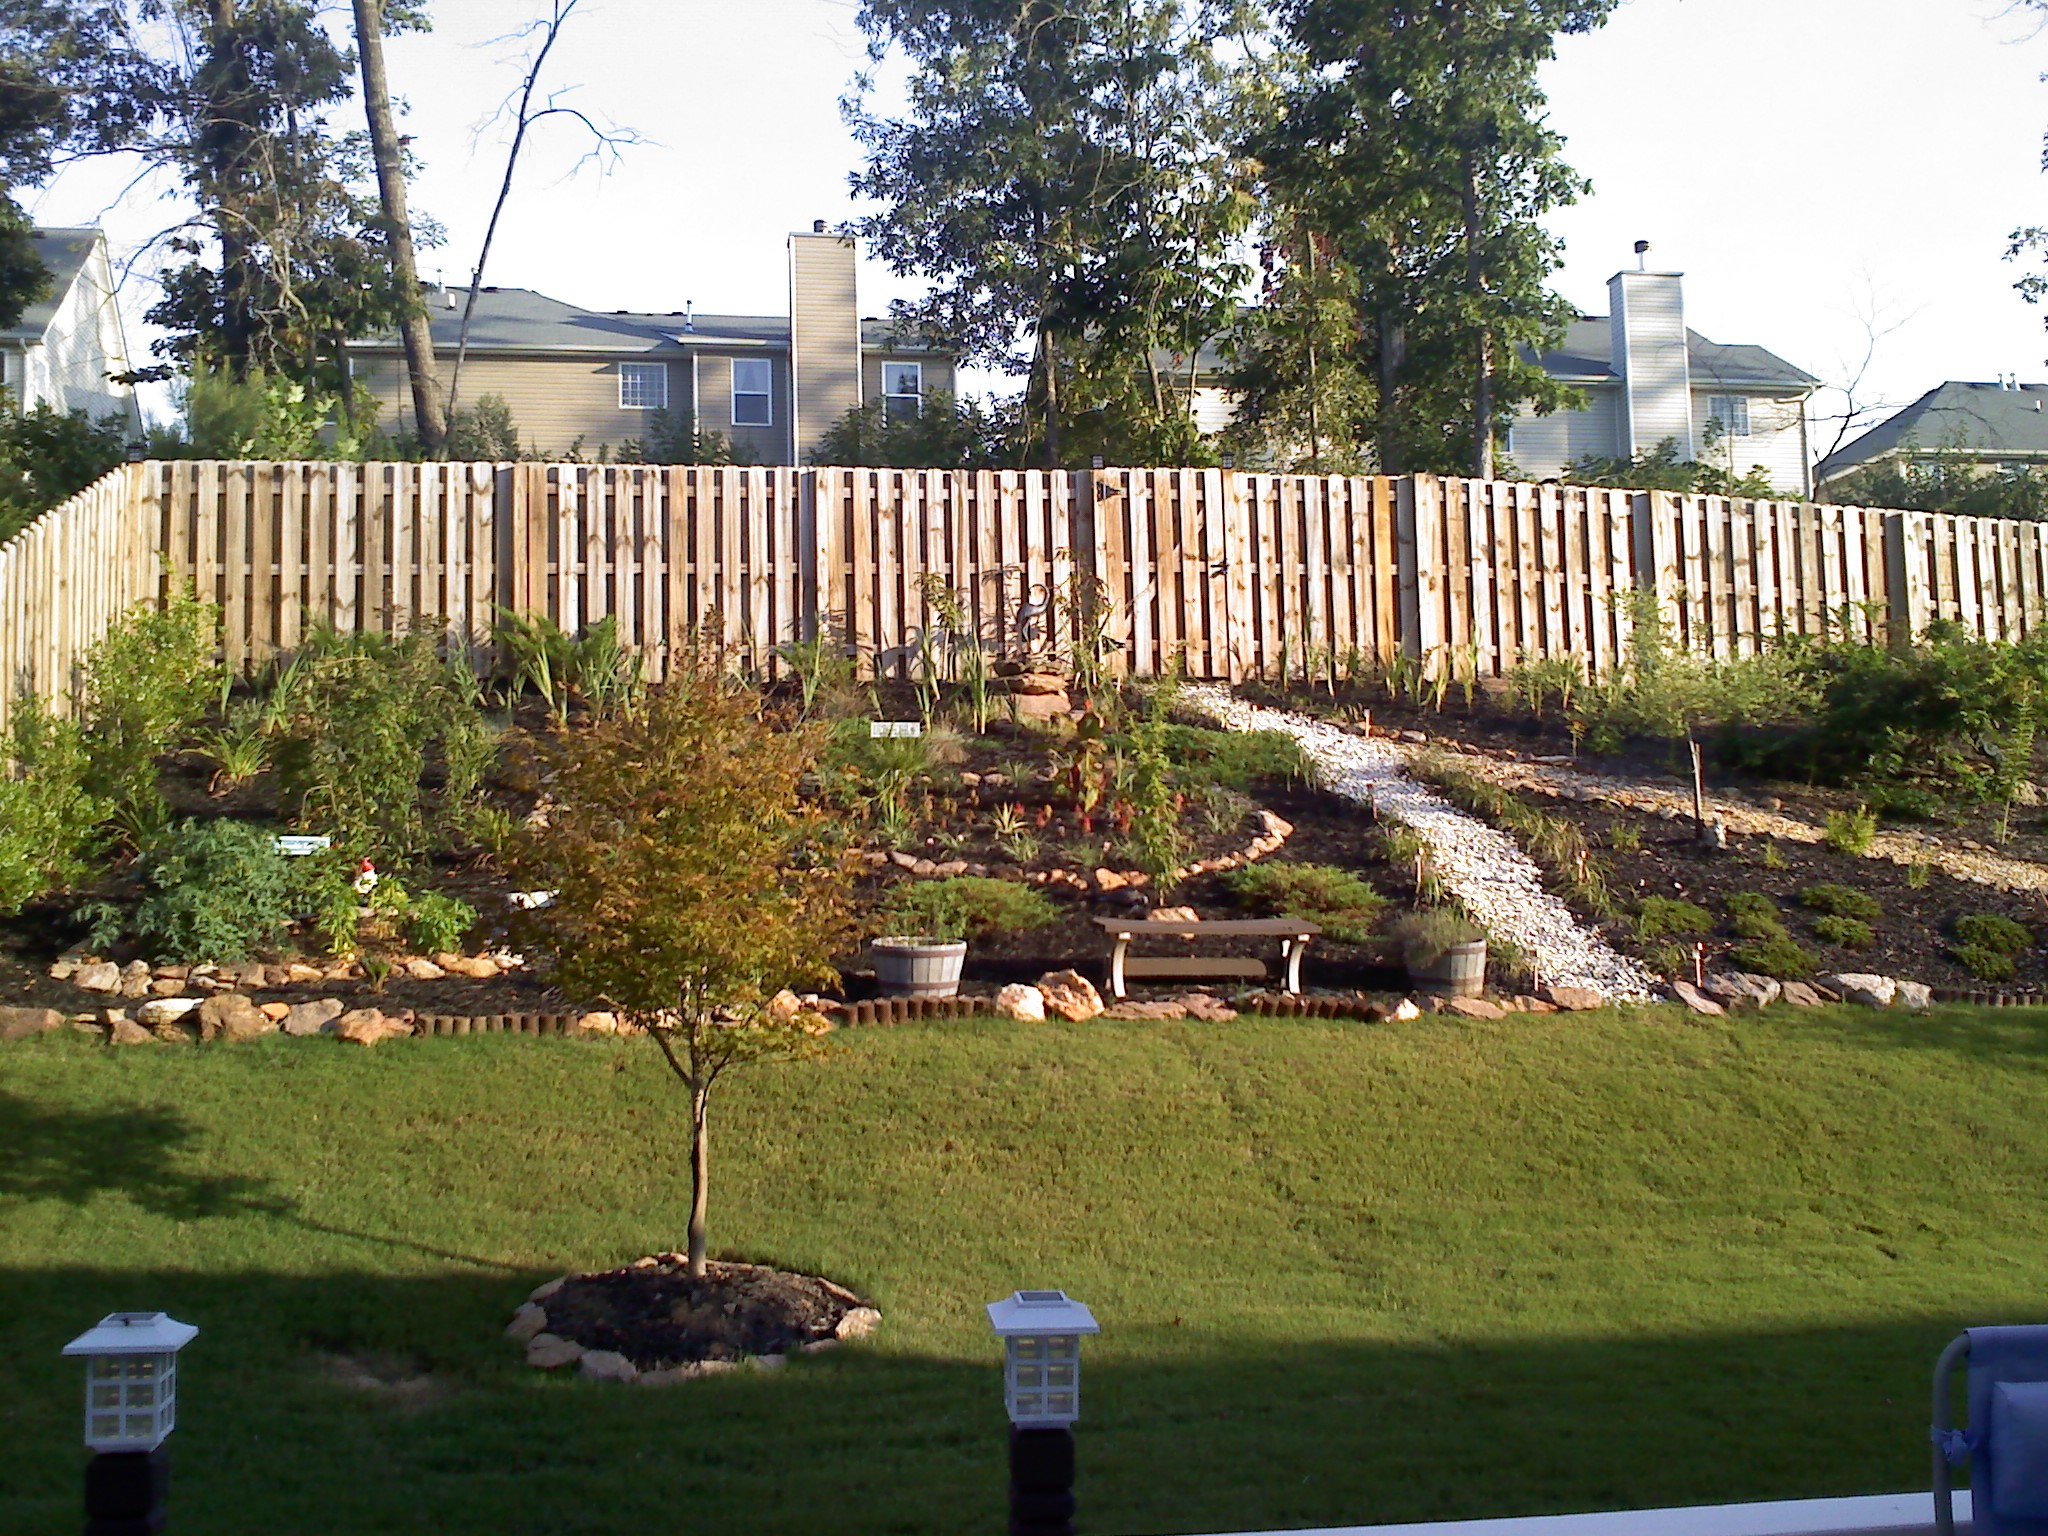 Tiered Backyard Pictures : Should we install a retaining wall in our backyard? (engineered